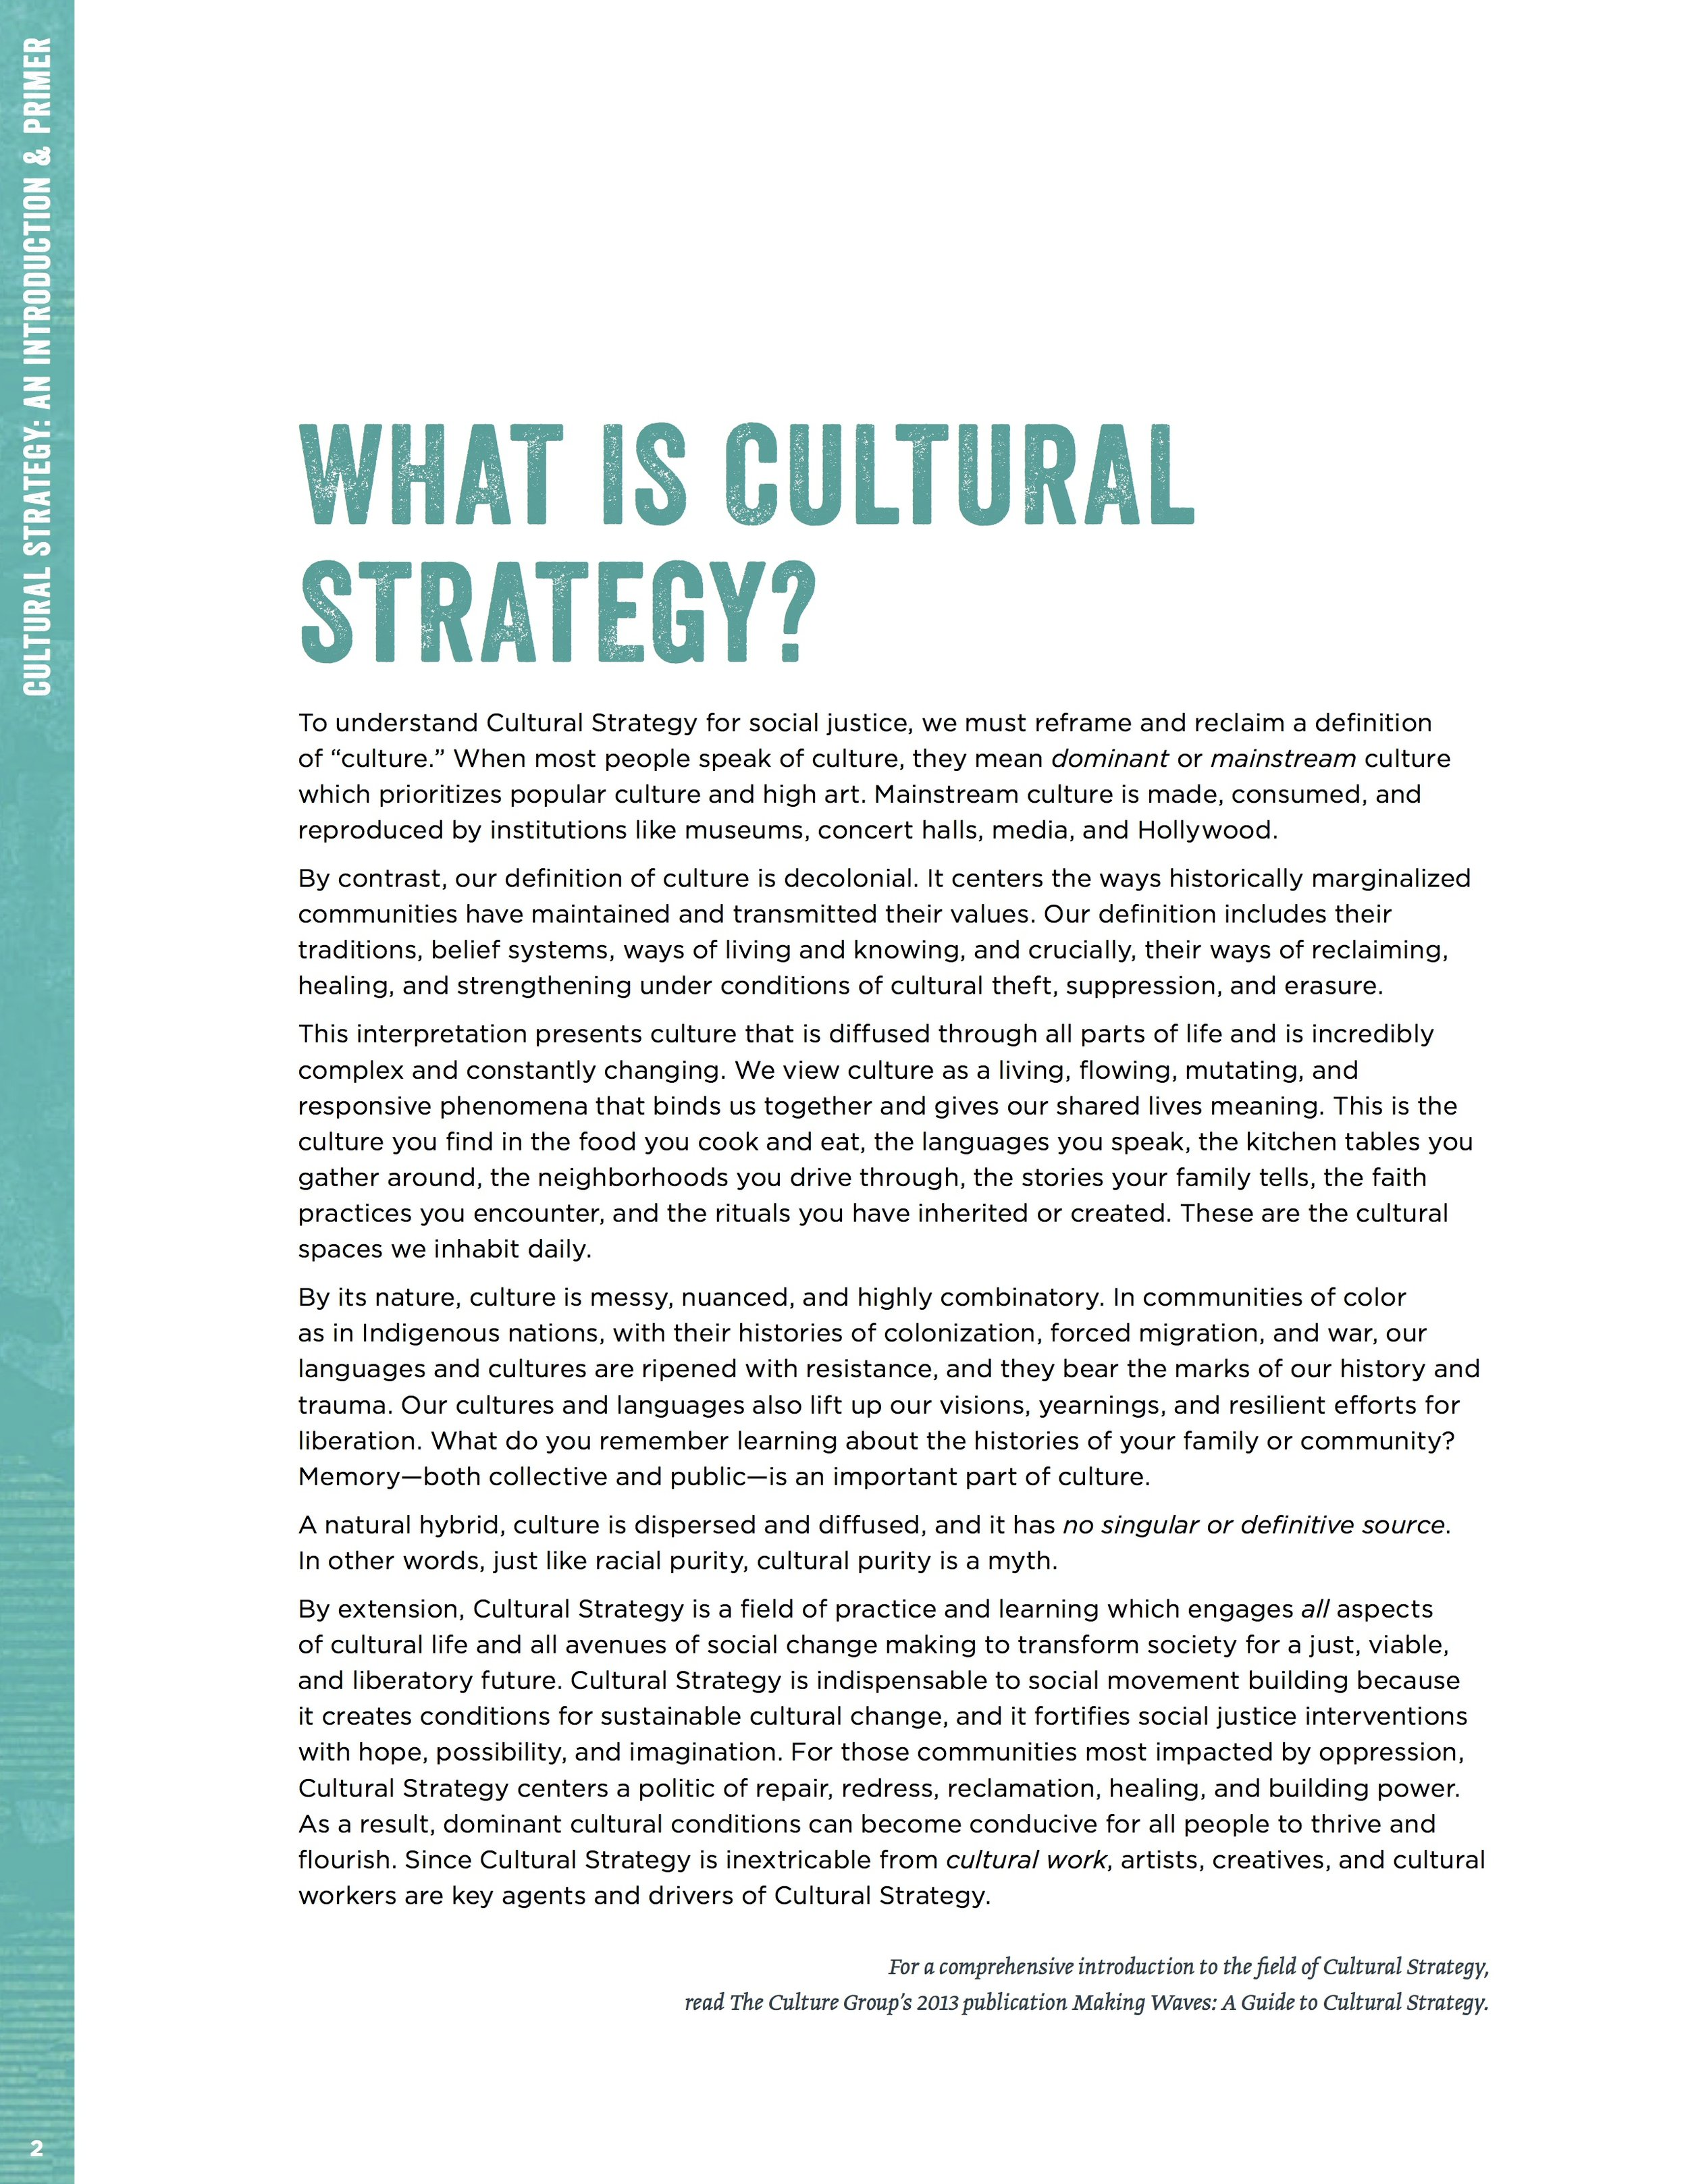 Power_CA-Cultural_Strategy_Primer-01_digital3.jpg